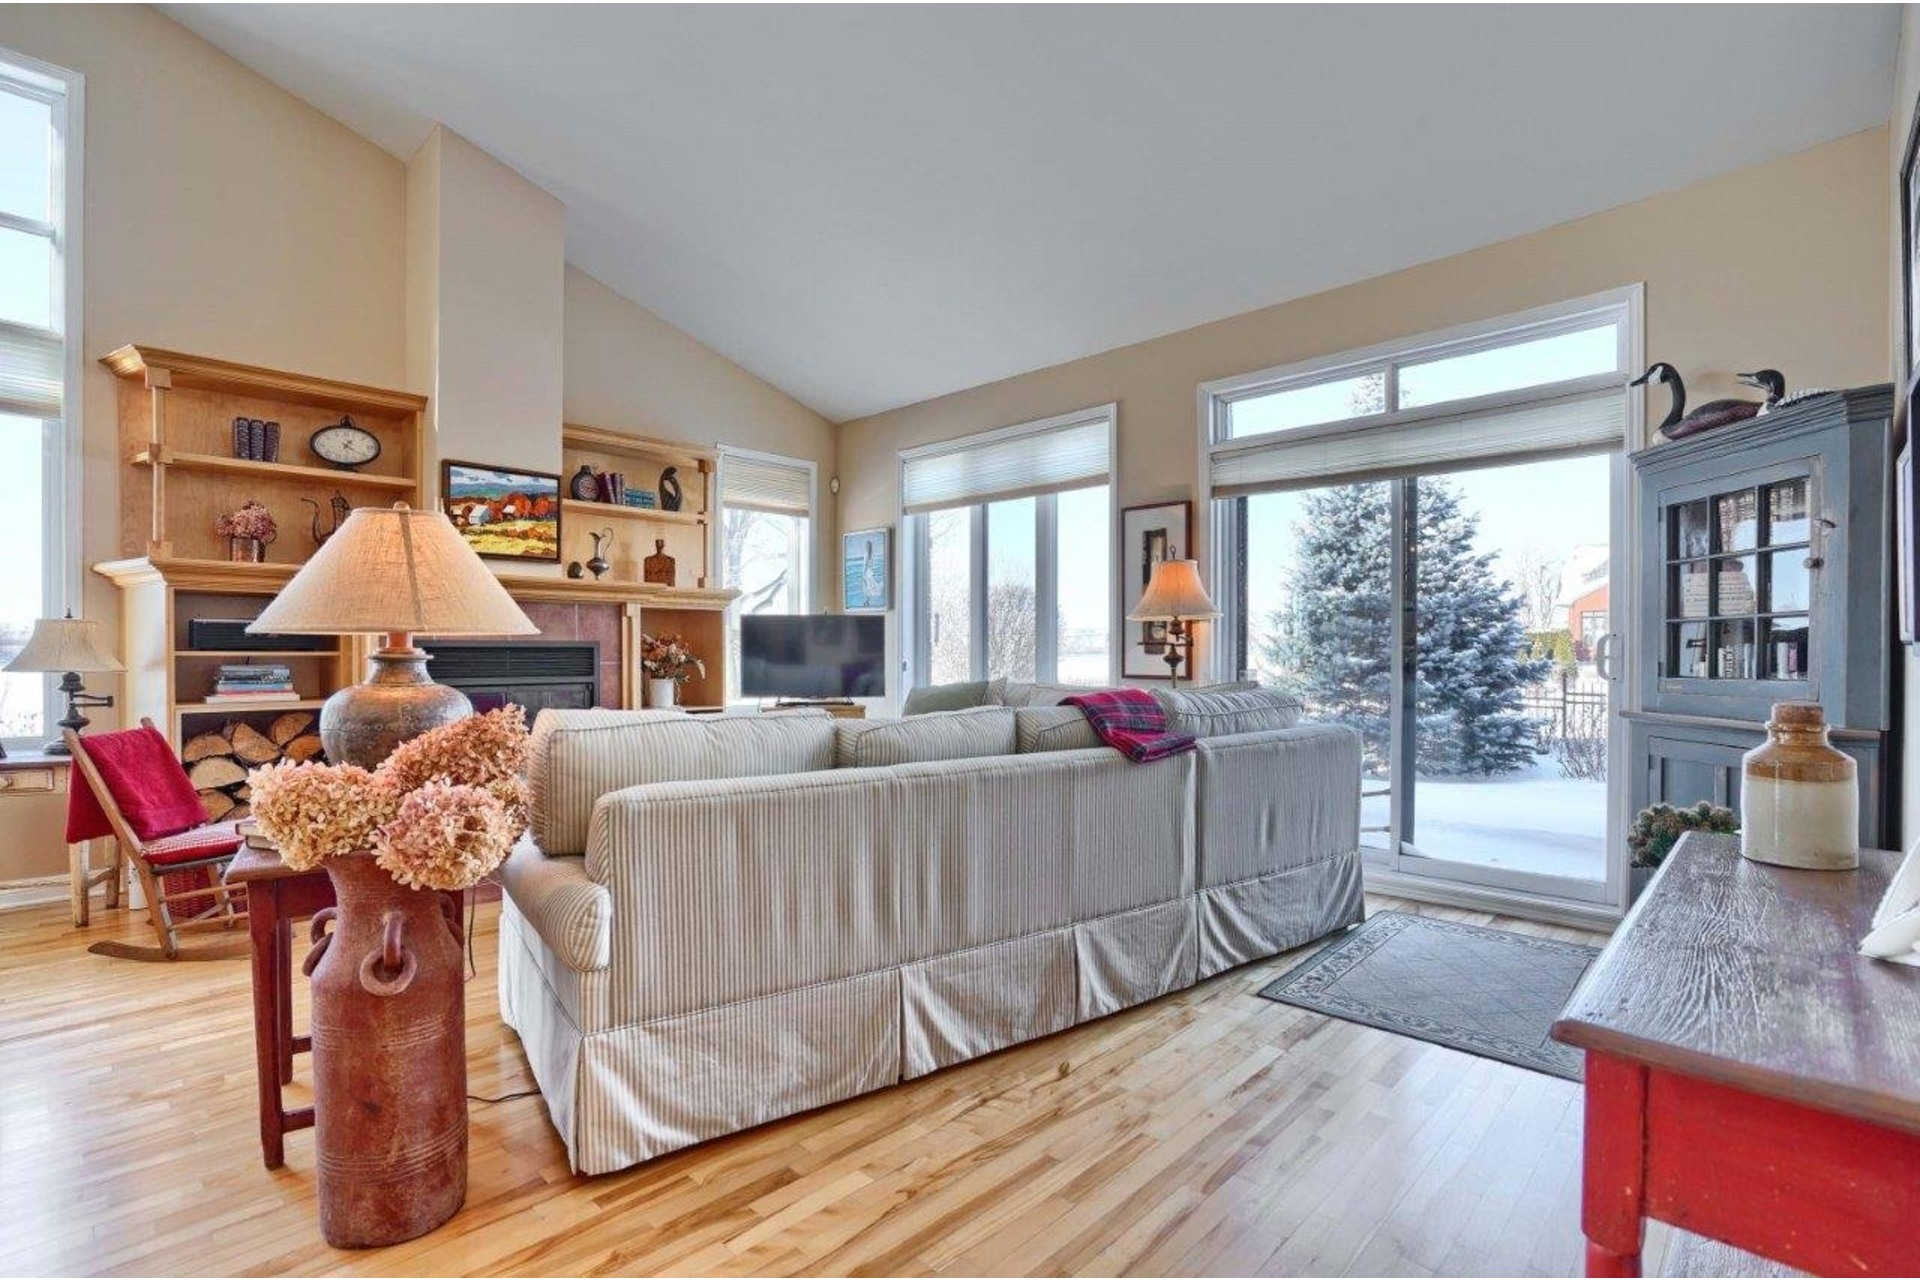 House For sale Brossard - 8 rooms